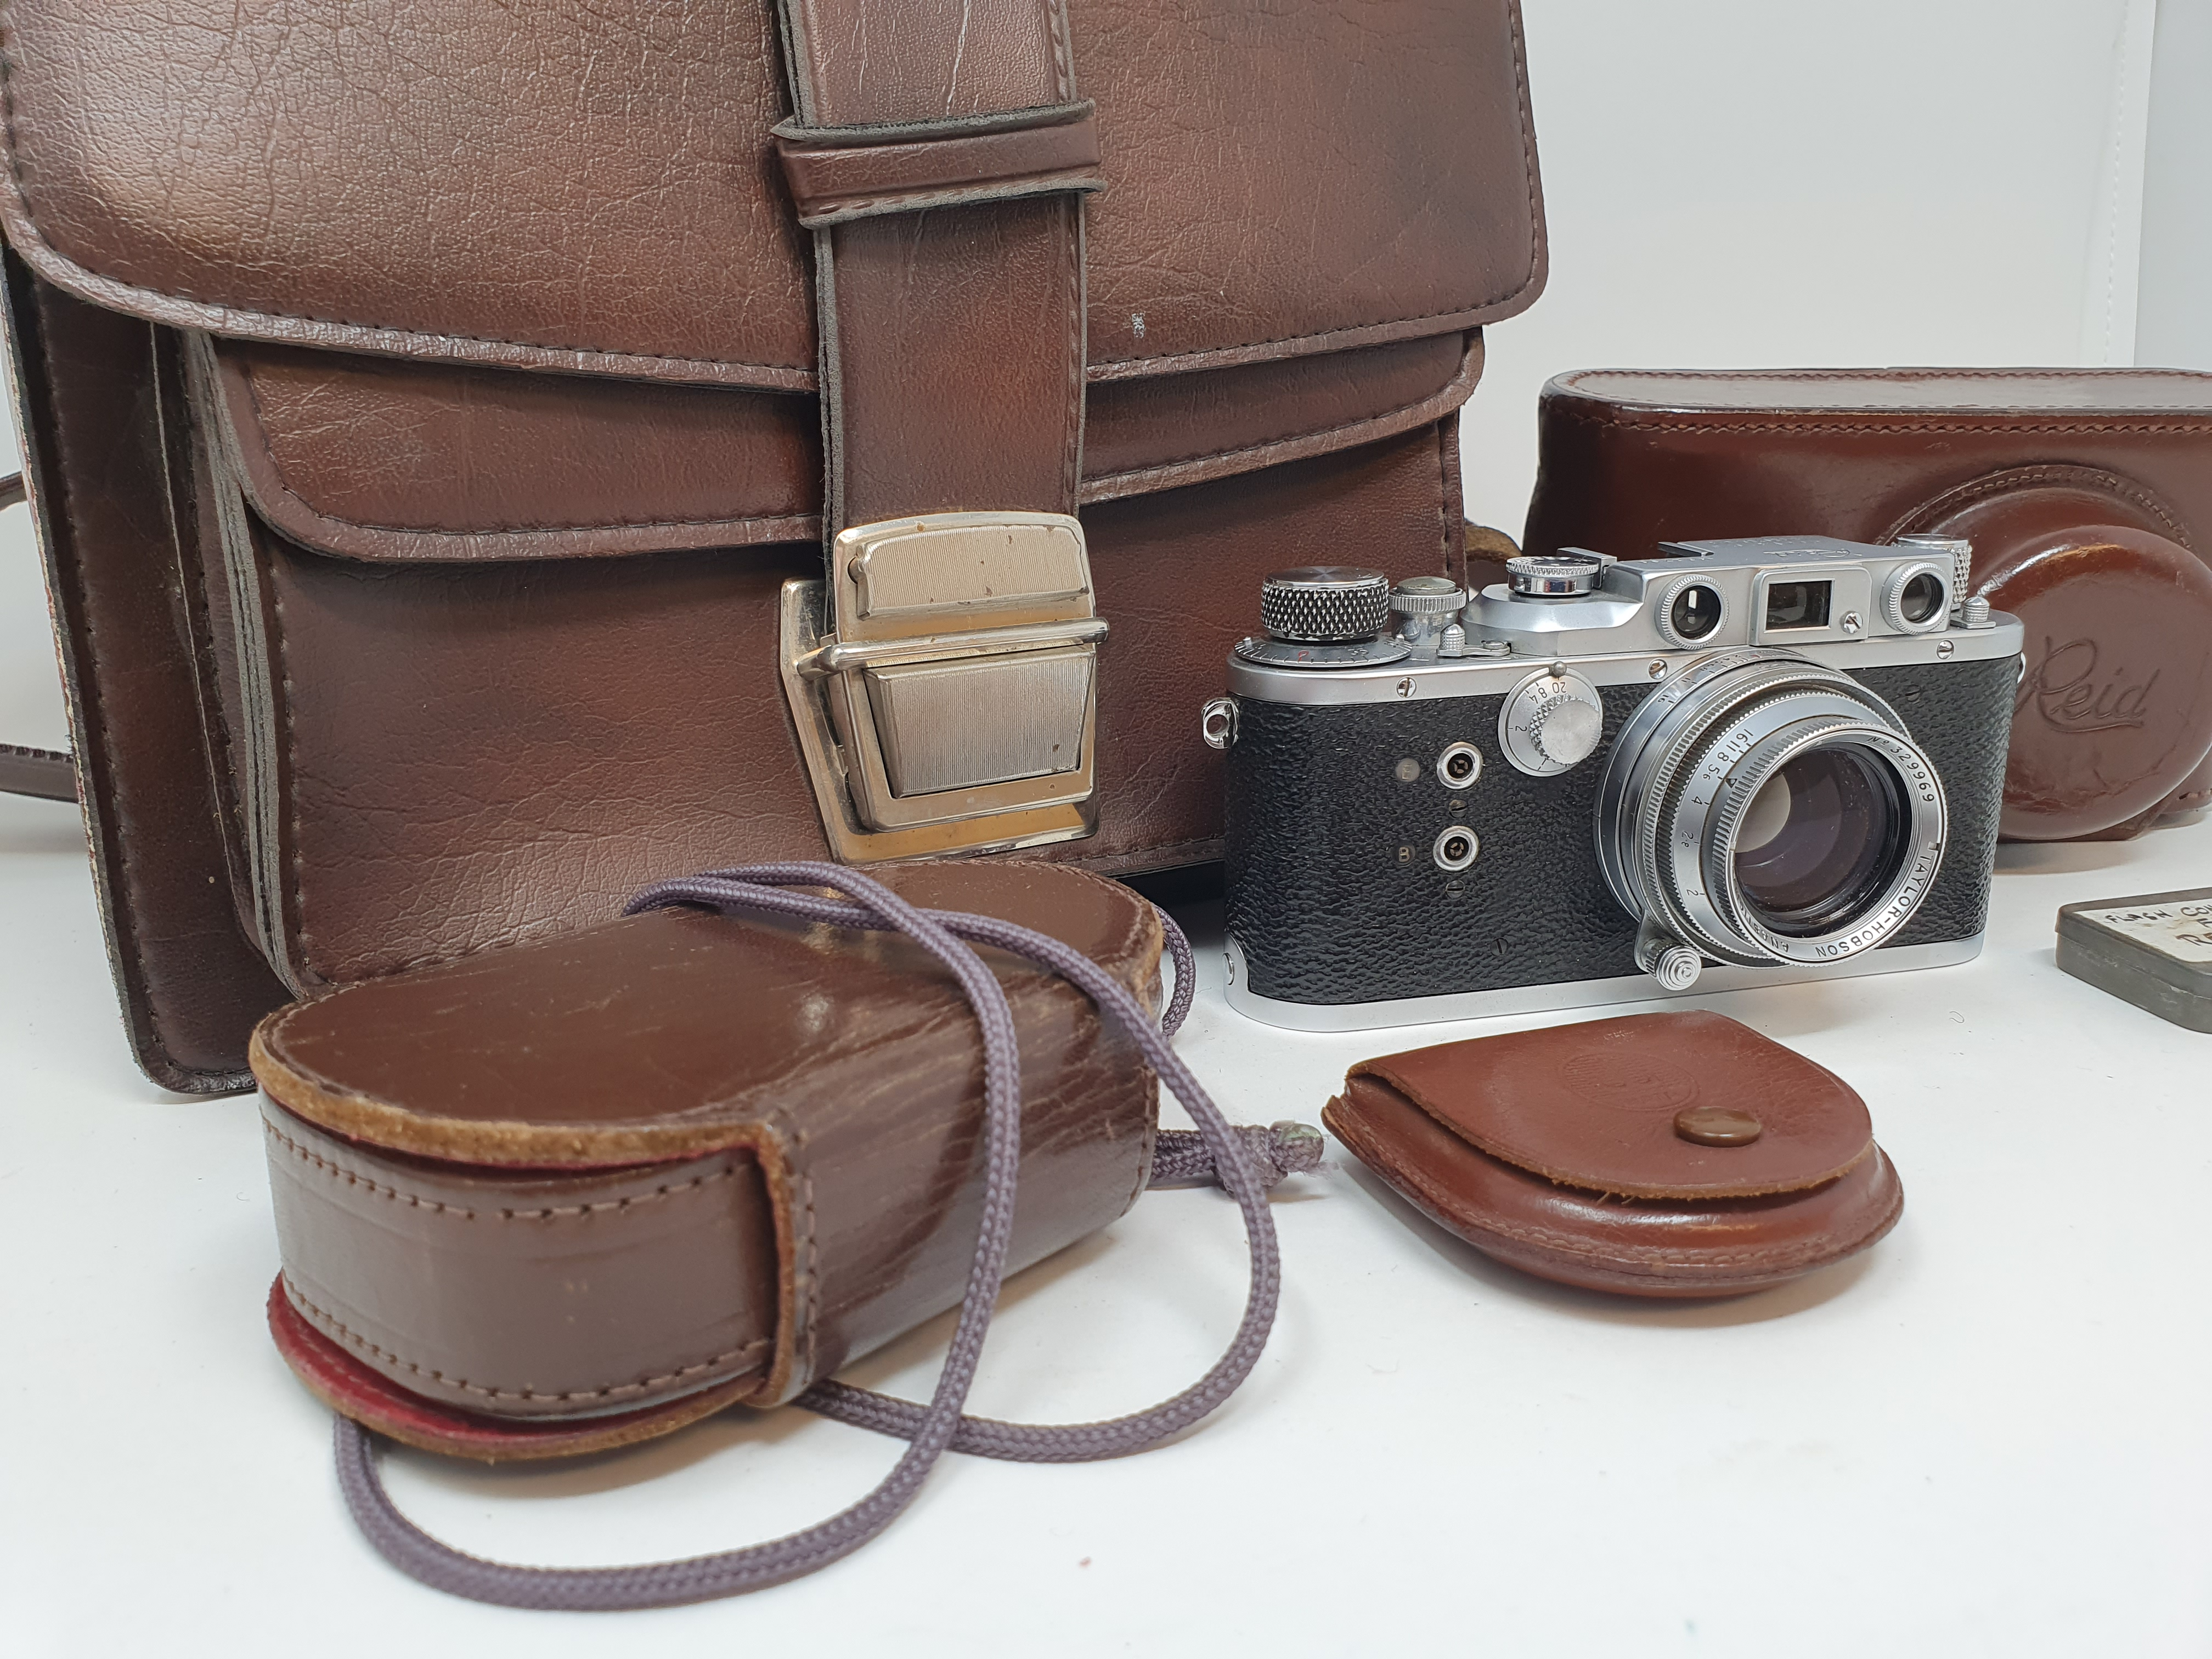 A Reid & Sigrist ltd camera, serial number P2750, with leather outer case, lens, and accessories - Image 2 of 7